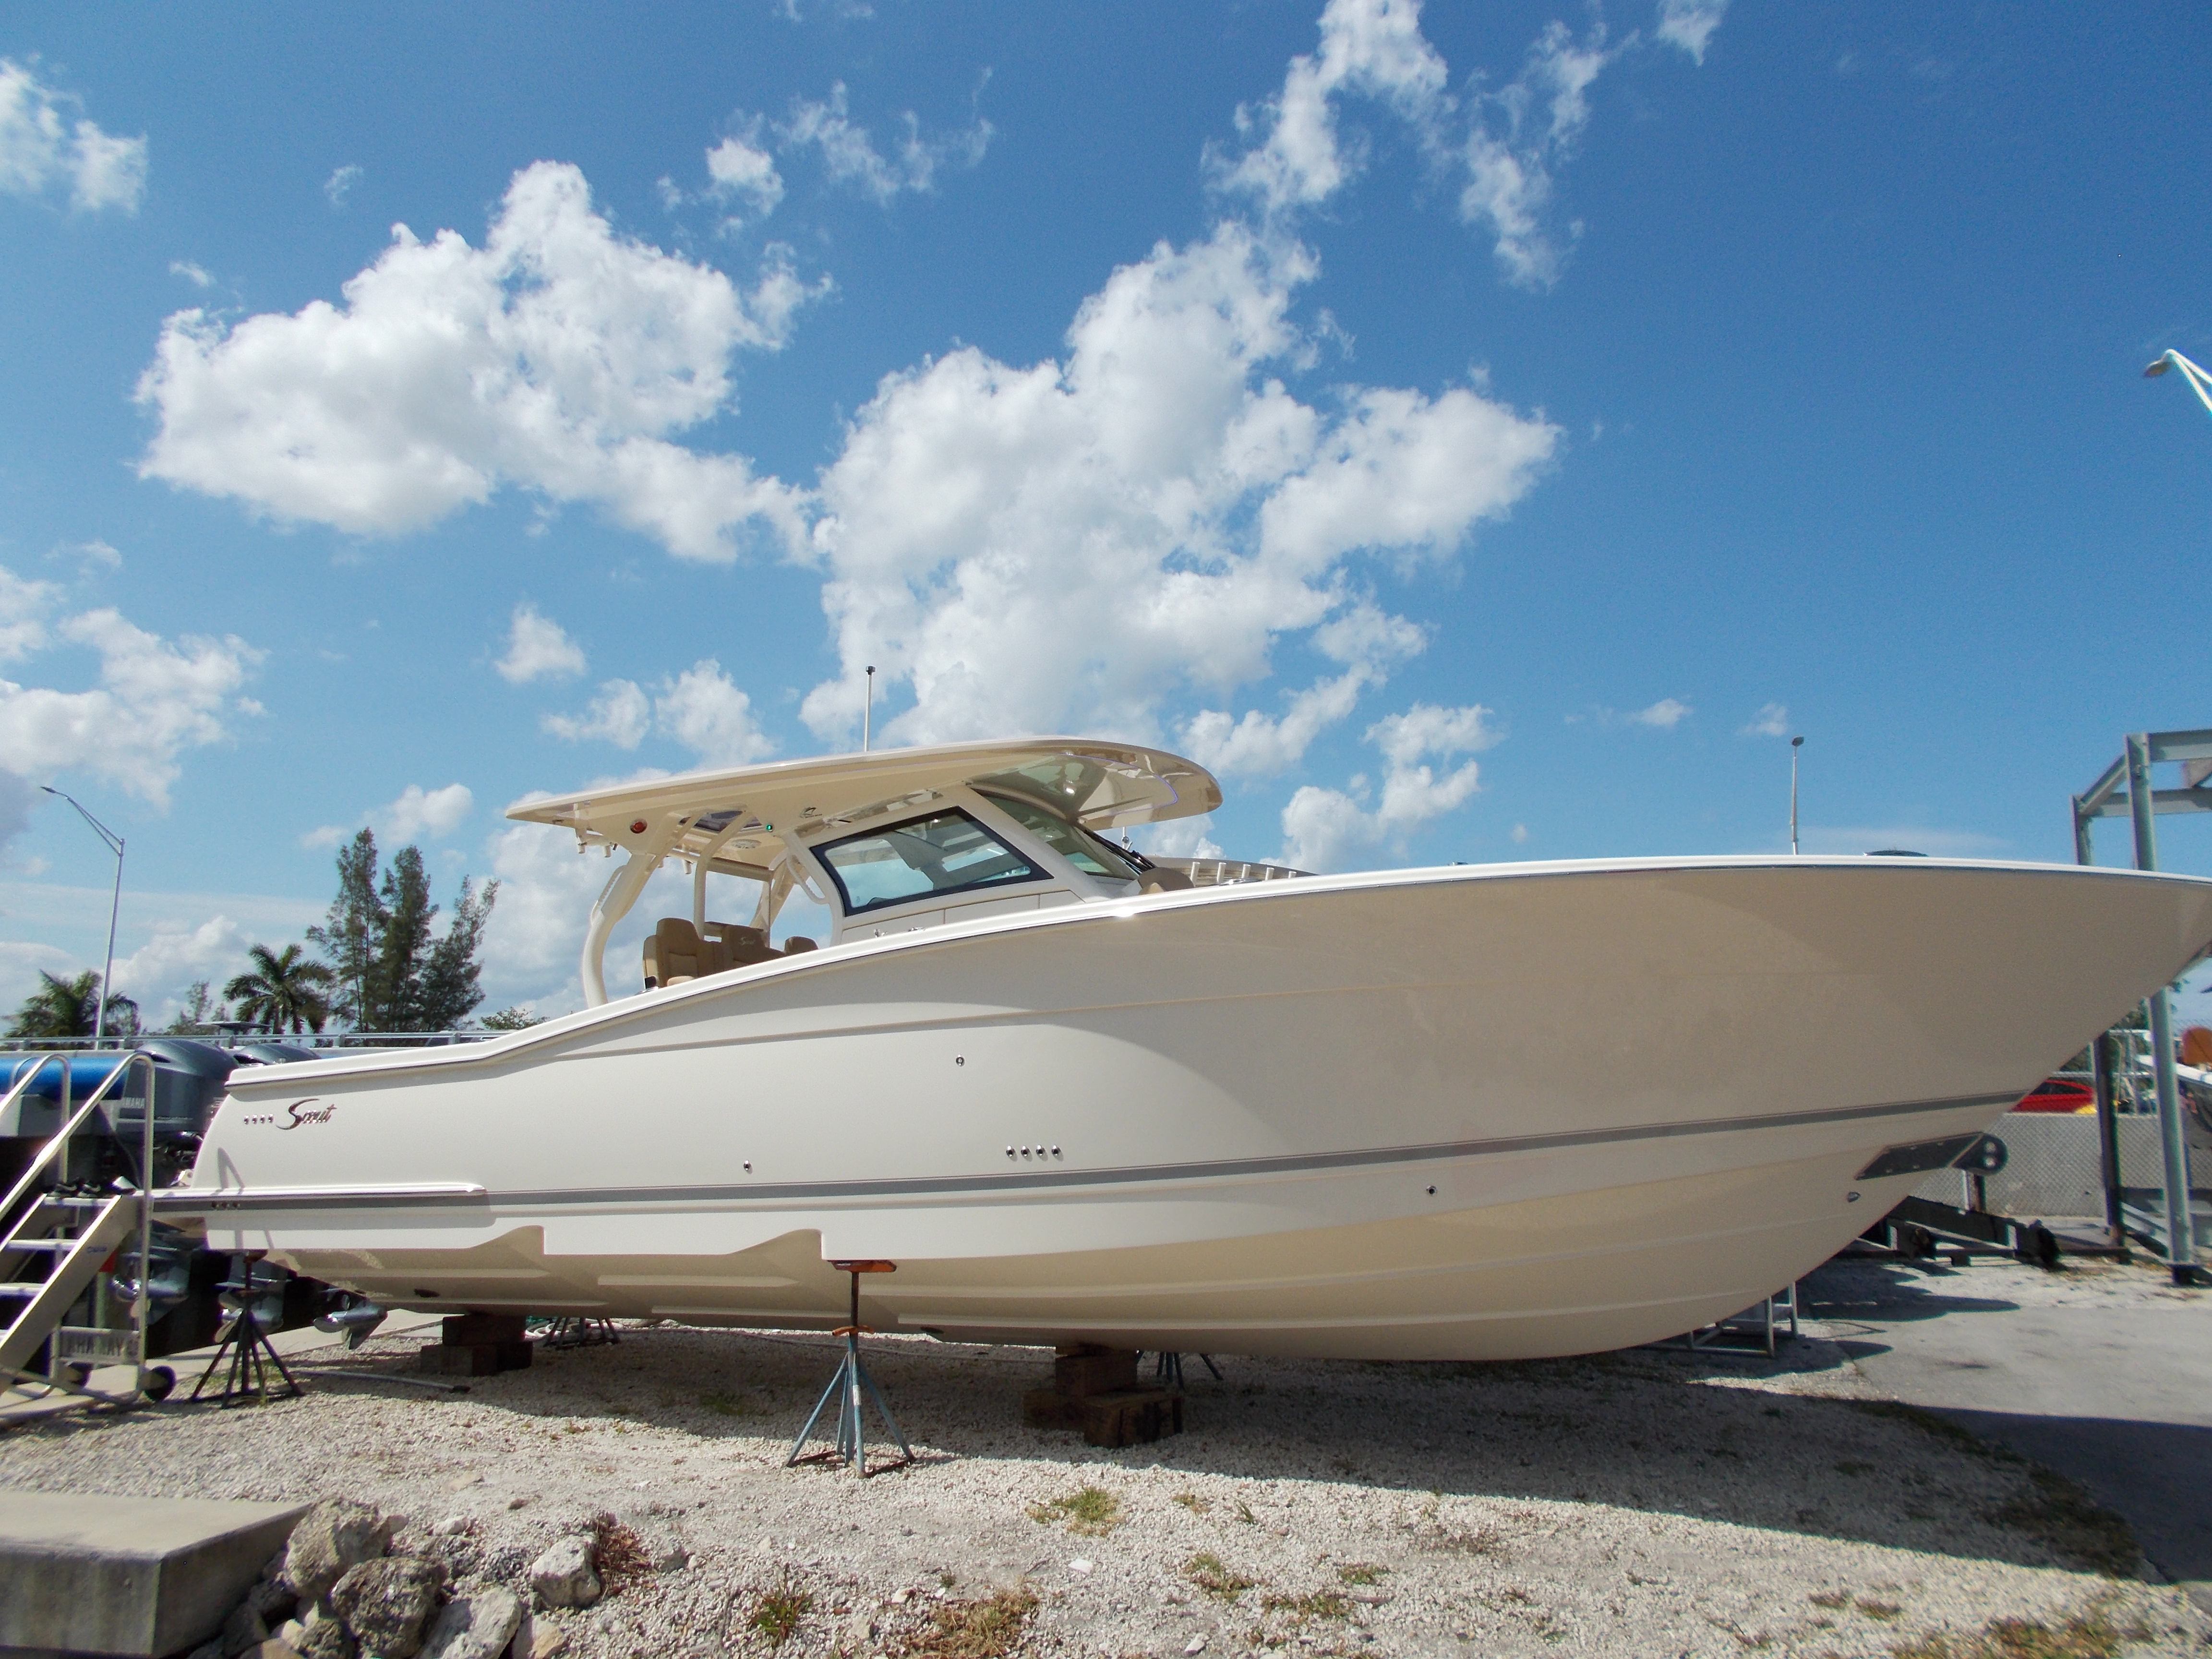 New 2018 SCOUT 380 LXF, Ft Lauderdale, Fl - 33312 - Boat Trader